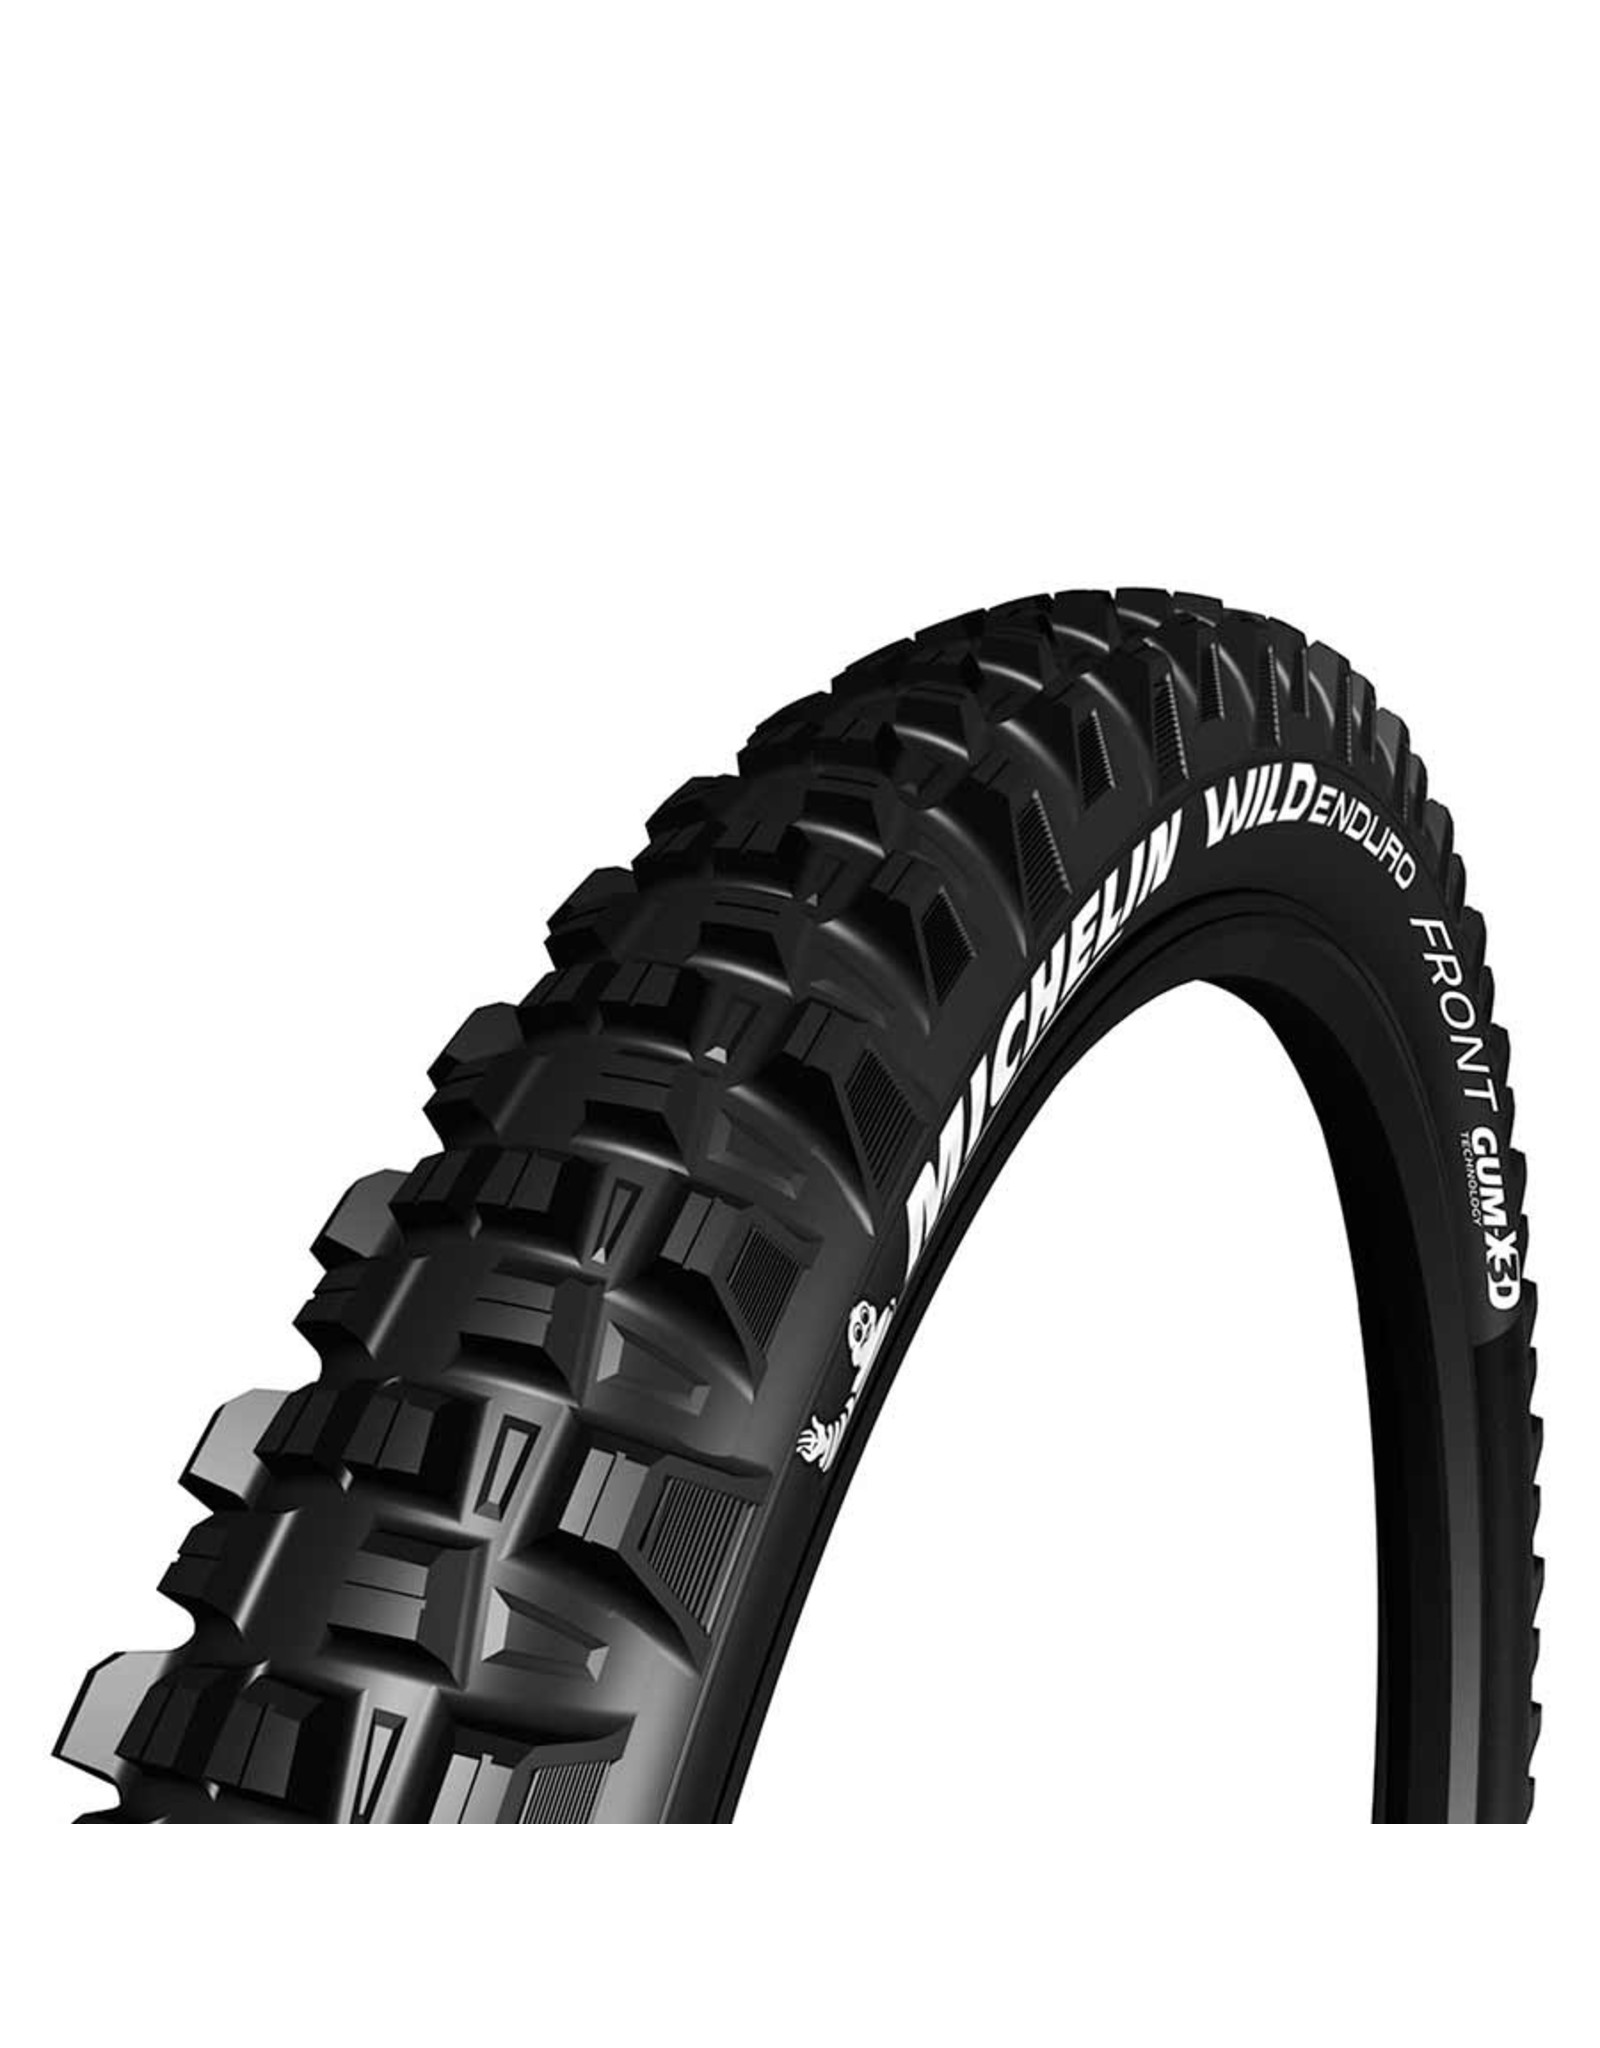 Michelin, Wild Enduro Front, Tire, 27.5''x2.40, Folding, Tubeless Ready, MAGI-X, GravityShield, 60TPI, Black